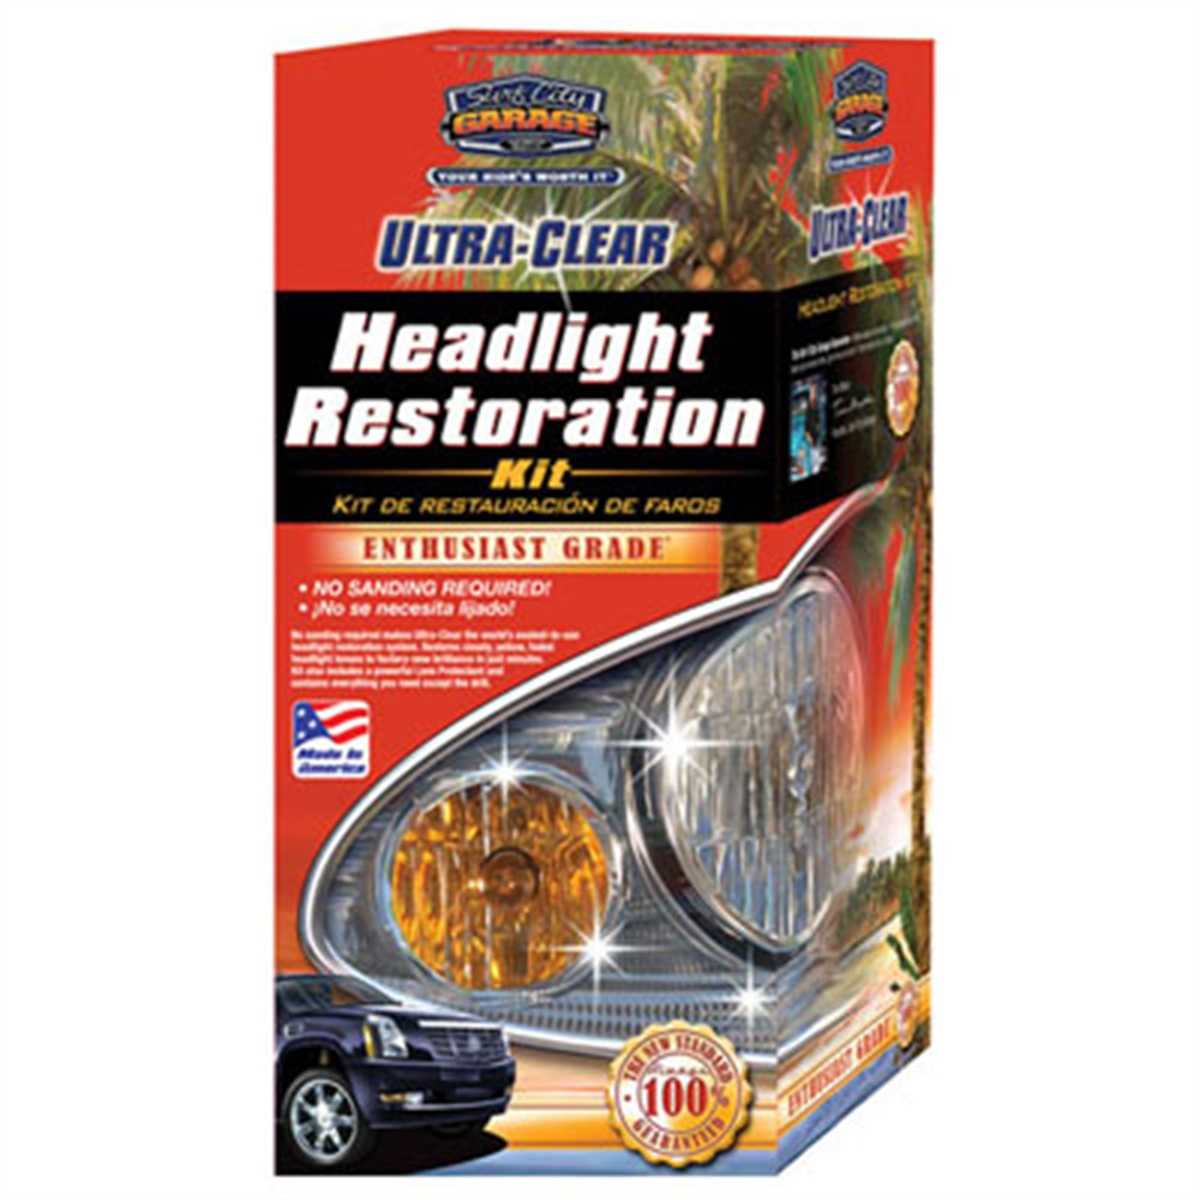 Ultra Clear Headlight Restoration Kit